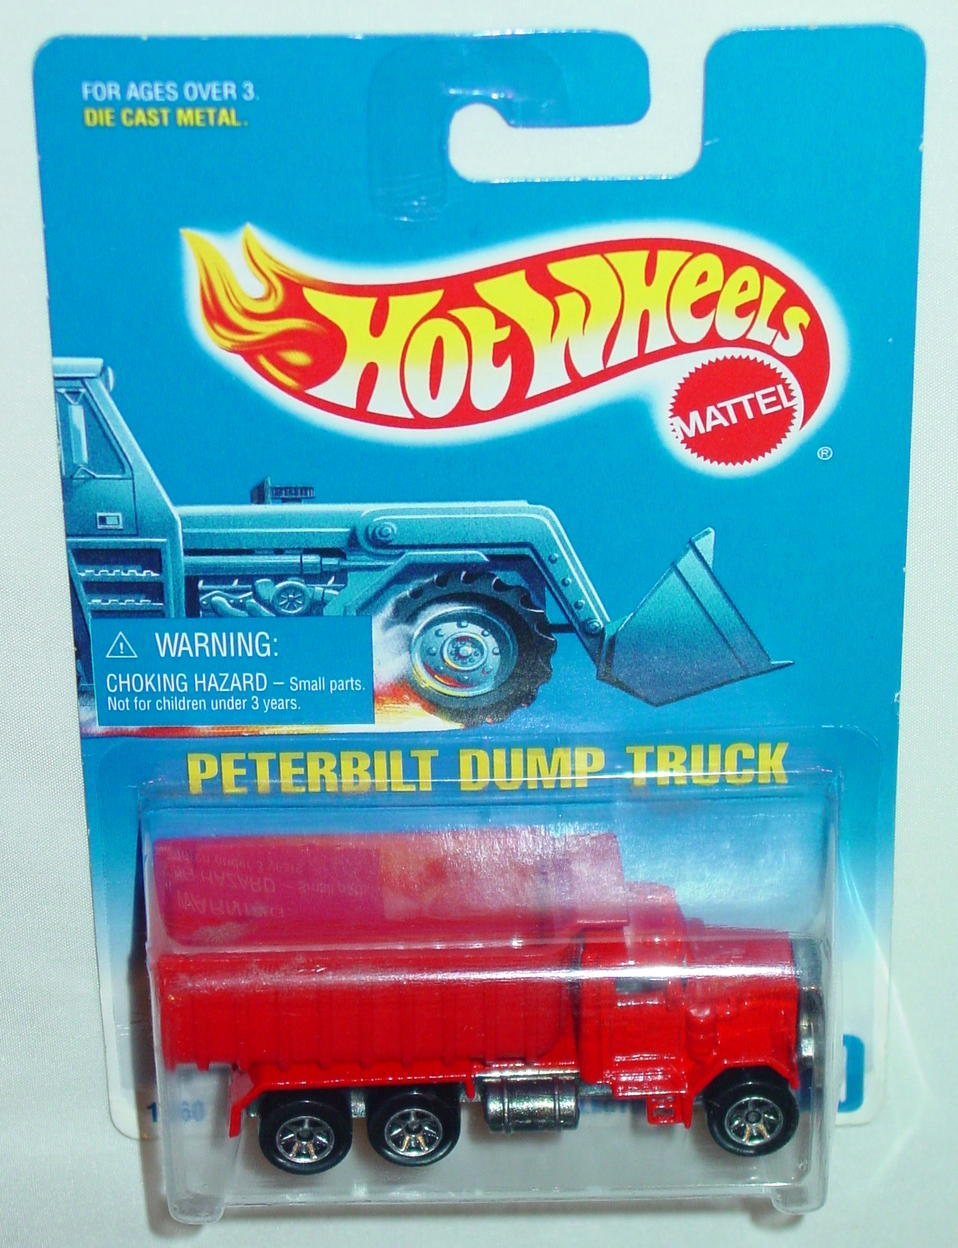 Blackwalls 1560 - 100 Peterbilt Dumper Red SP7